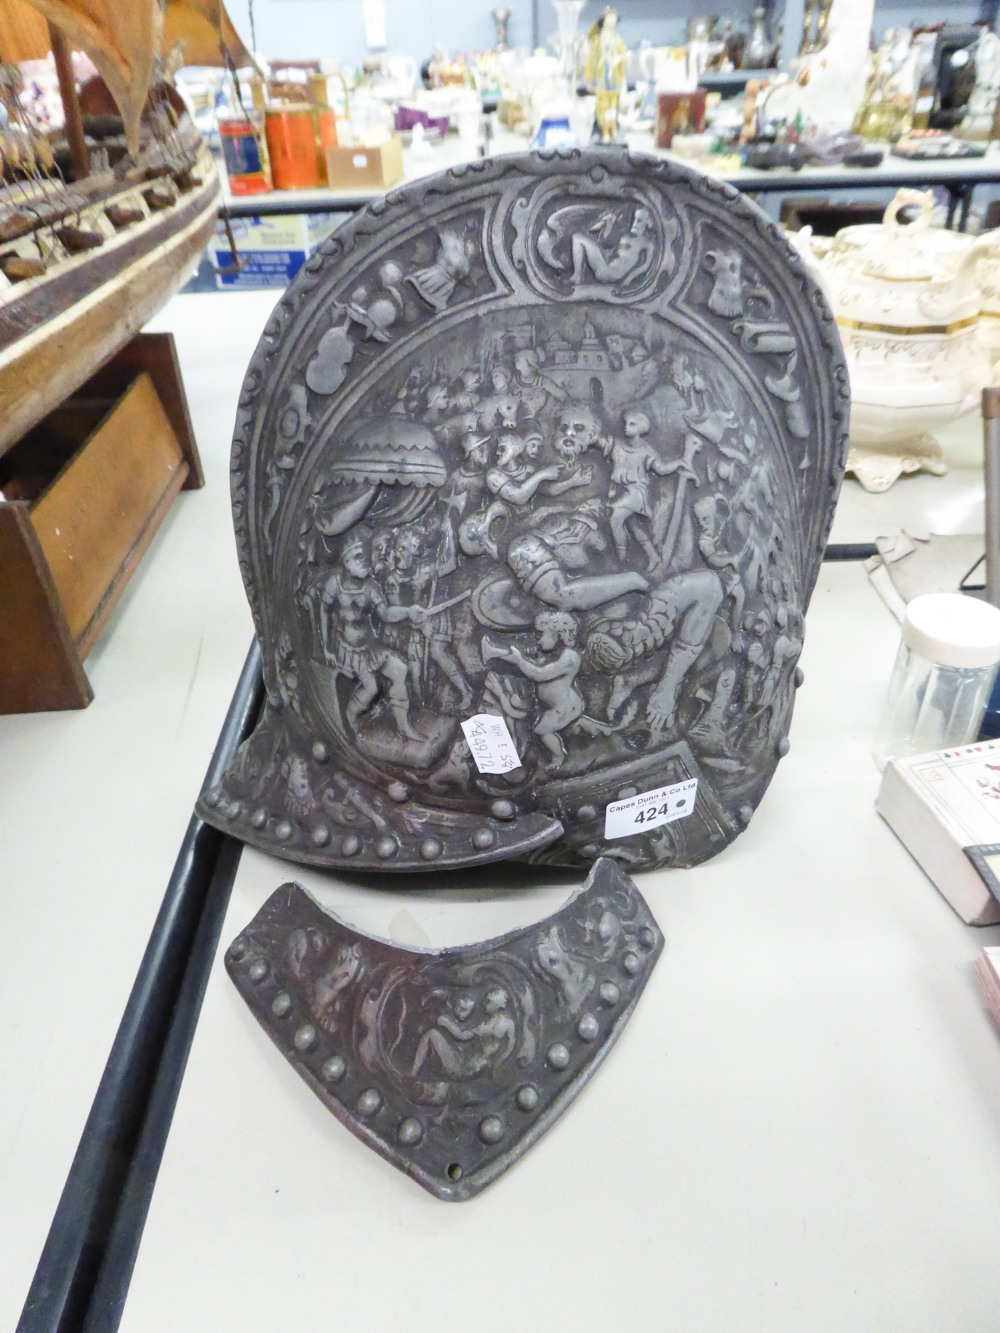 Lot 424 - OLD CAST METAL REPLICA OF AN ANCIENT WARRIOR'S HELMET, EMBOSSED WITH MANY FIGURES (AS FOUND)